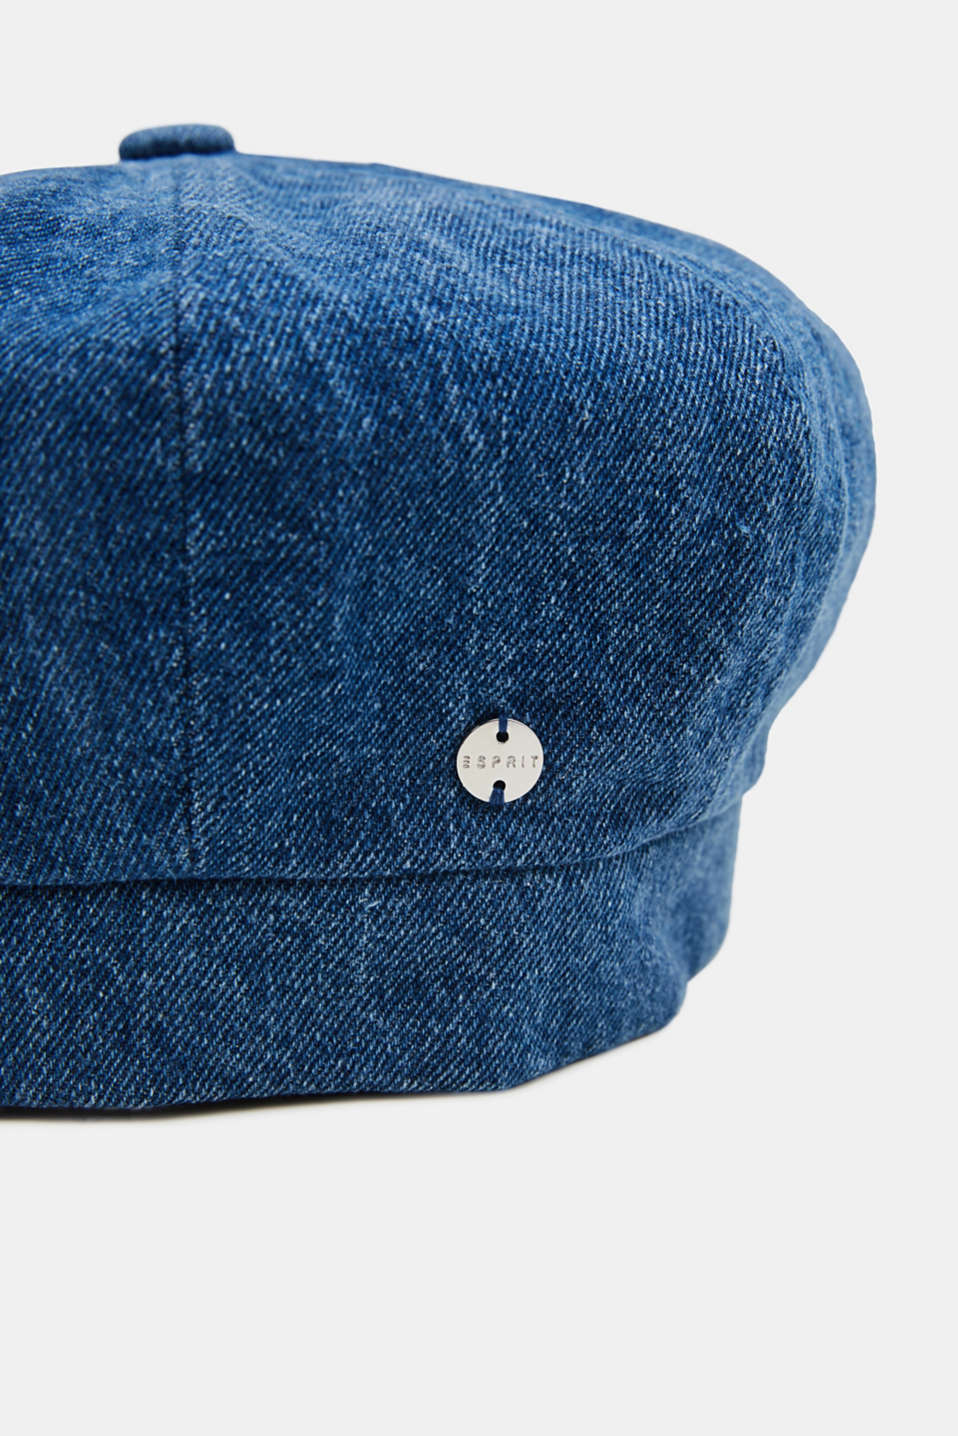 Denim beret in 100% cotton, NAVY, detail image number 1